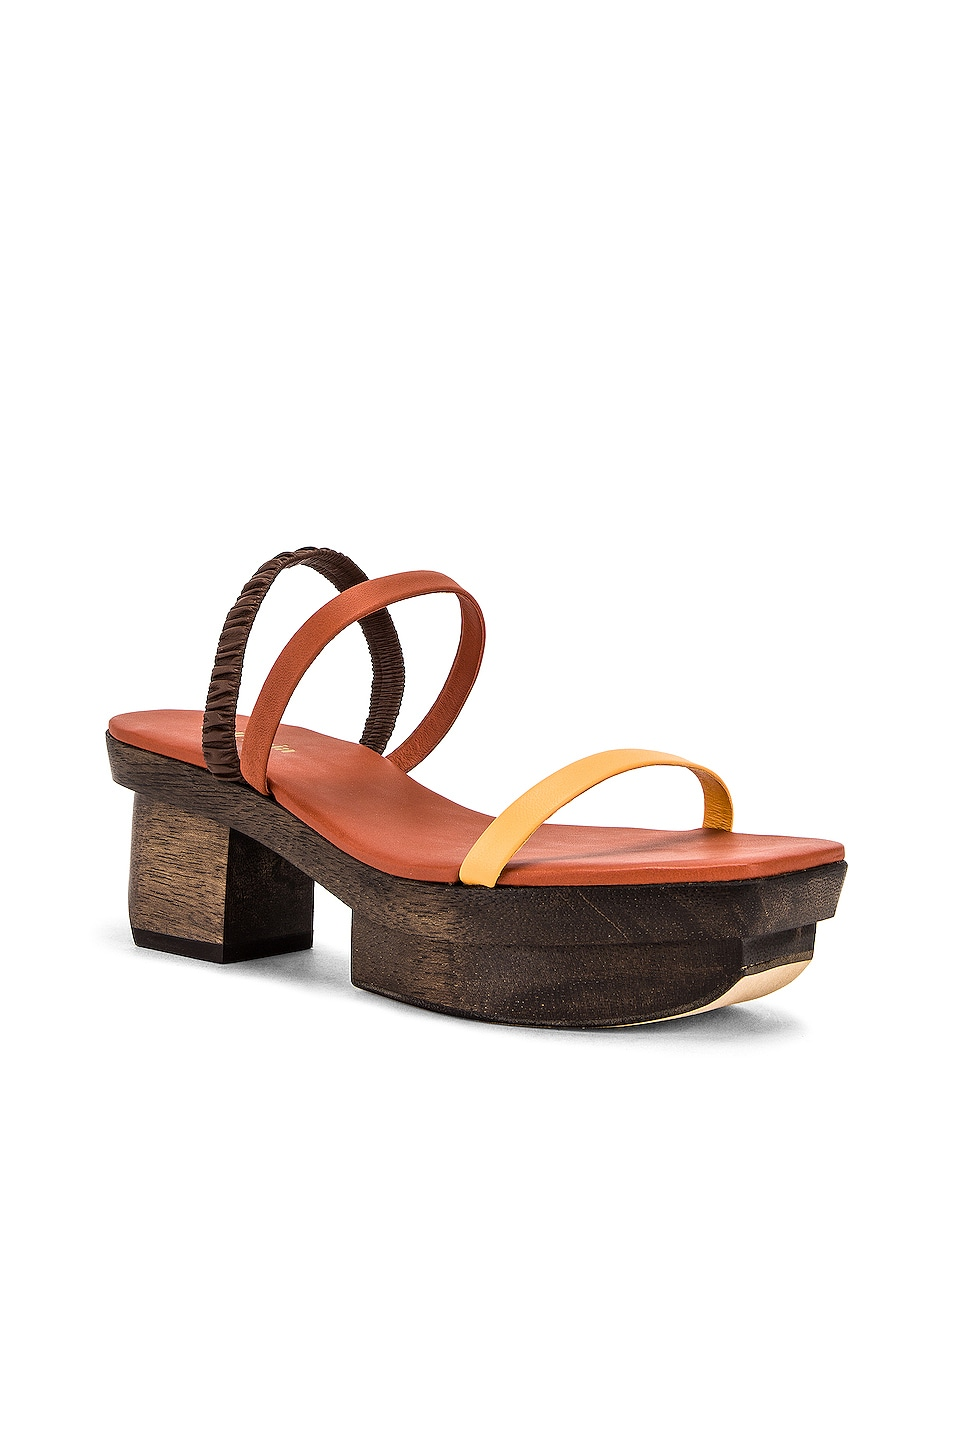 Image 2 of Cult Gaia Fifi Sandal in Spice